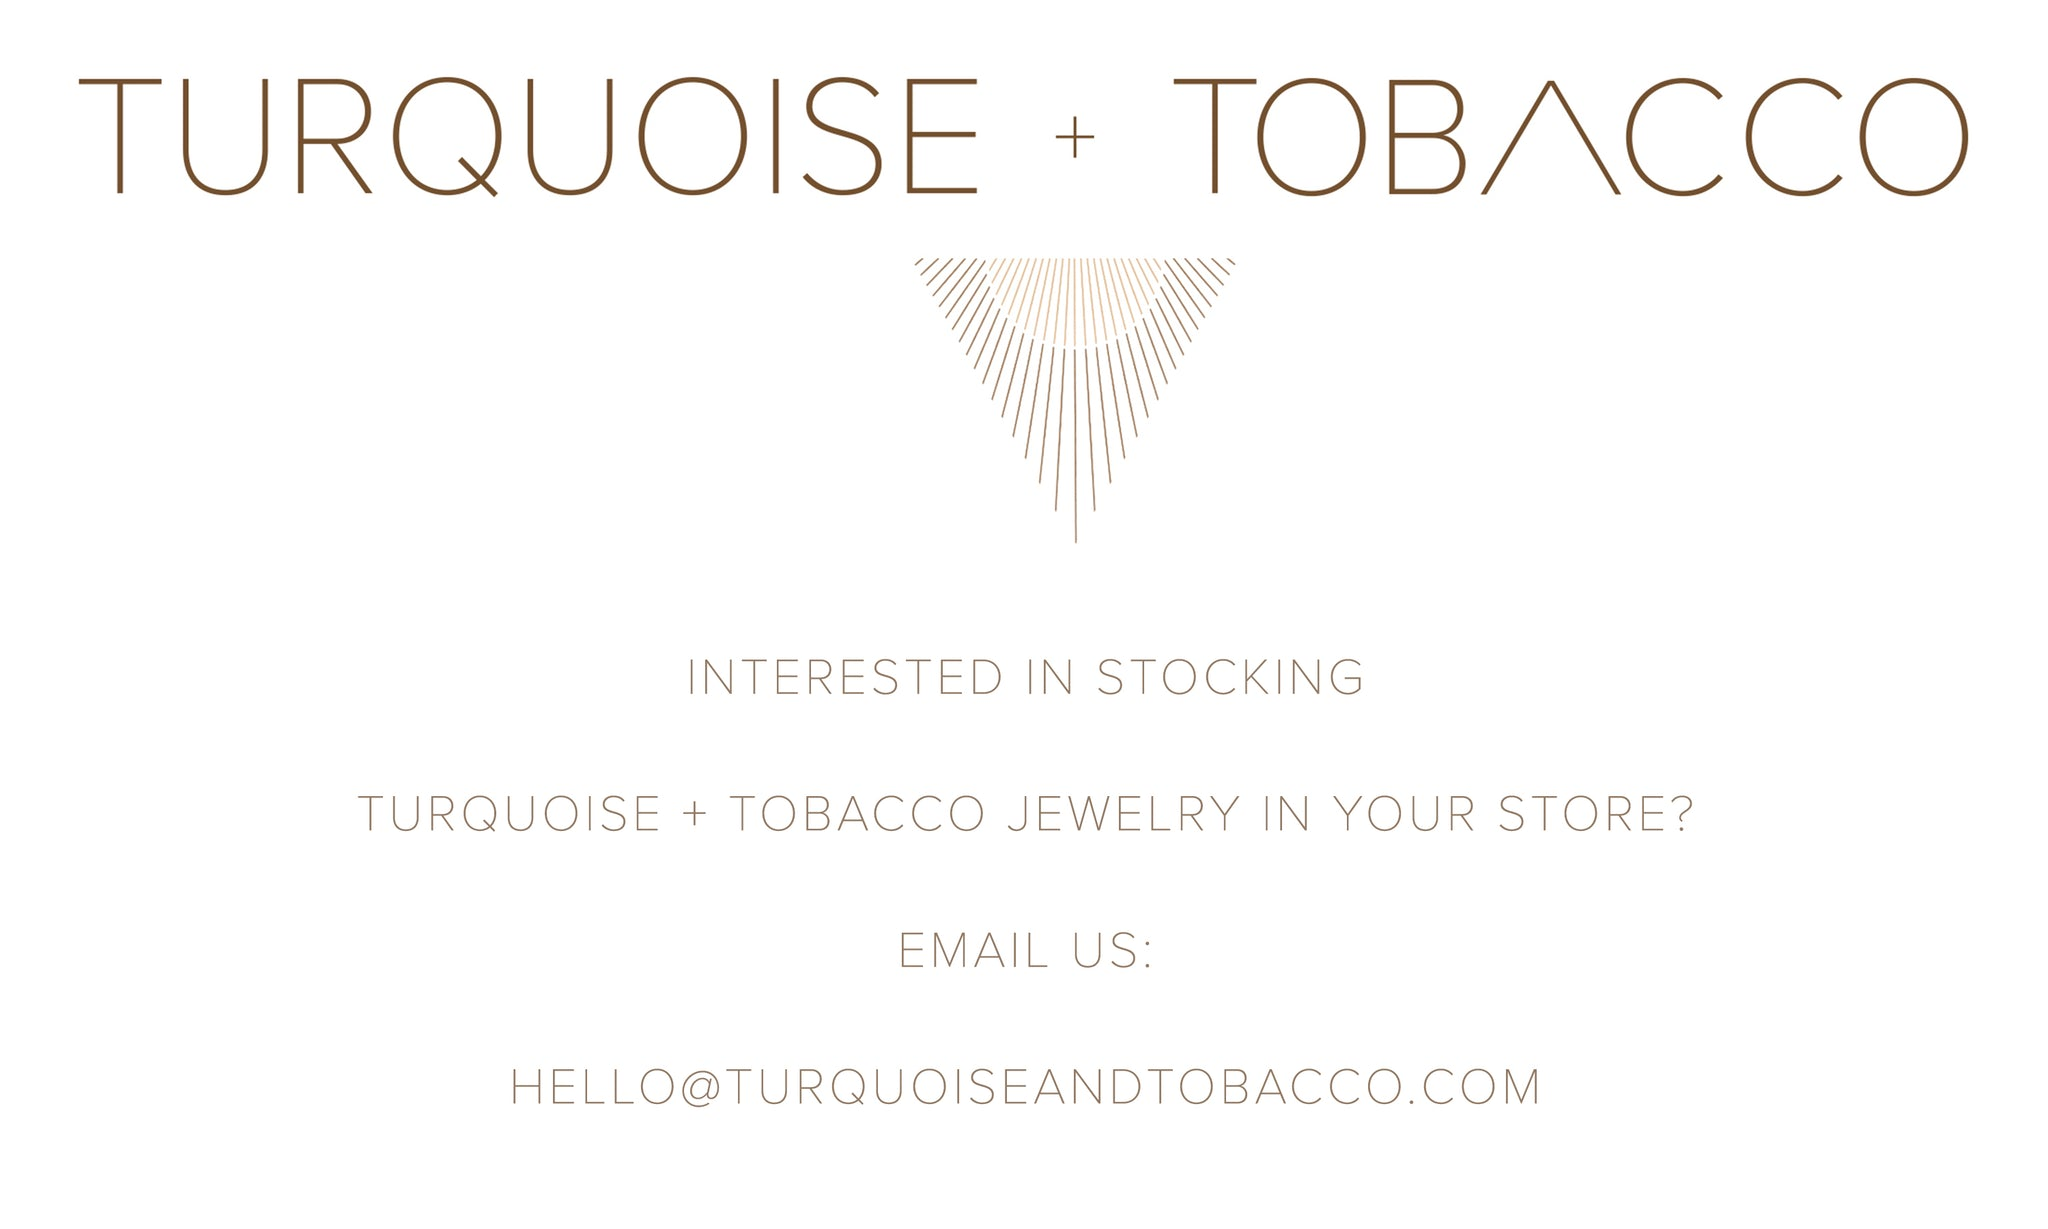 CONTACT US FOR WHOLESALE JEWELRY